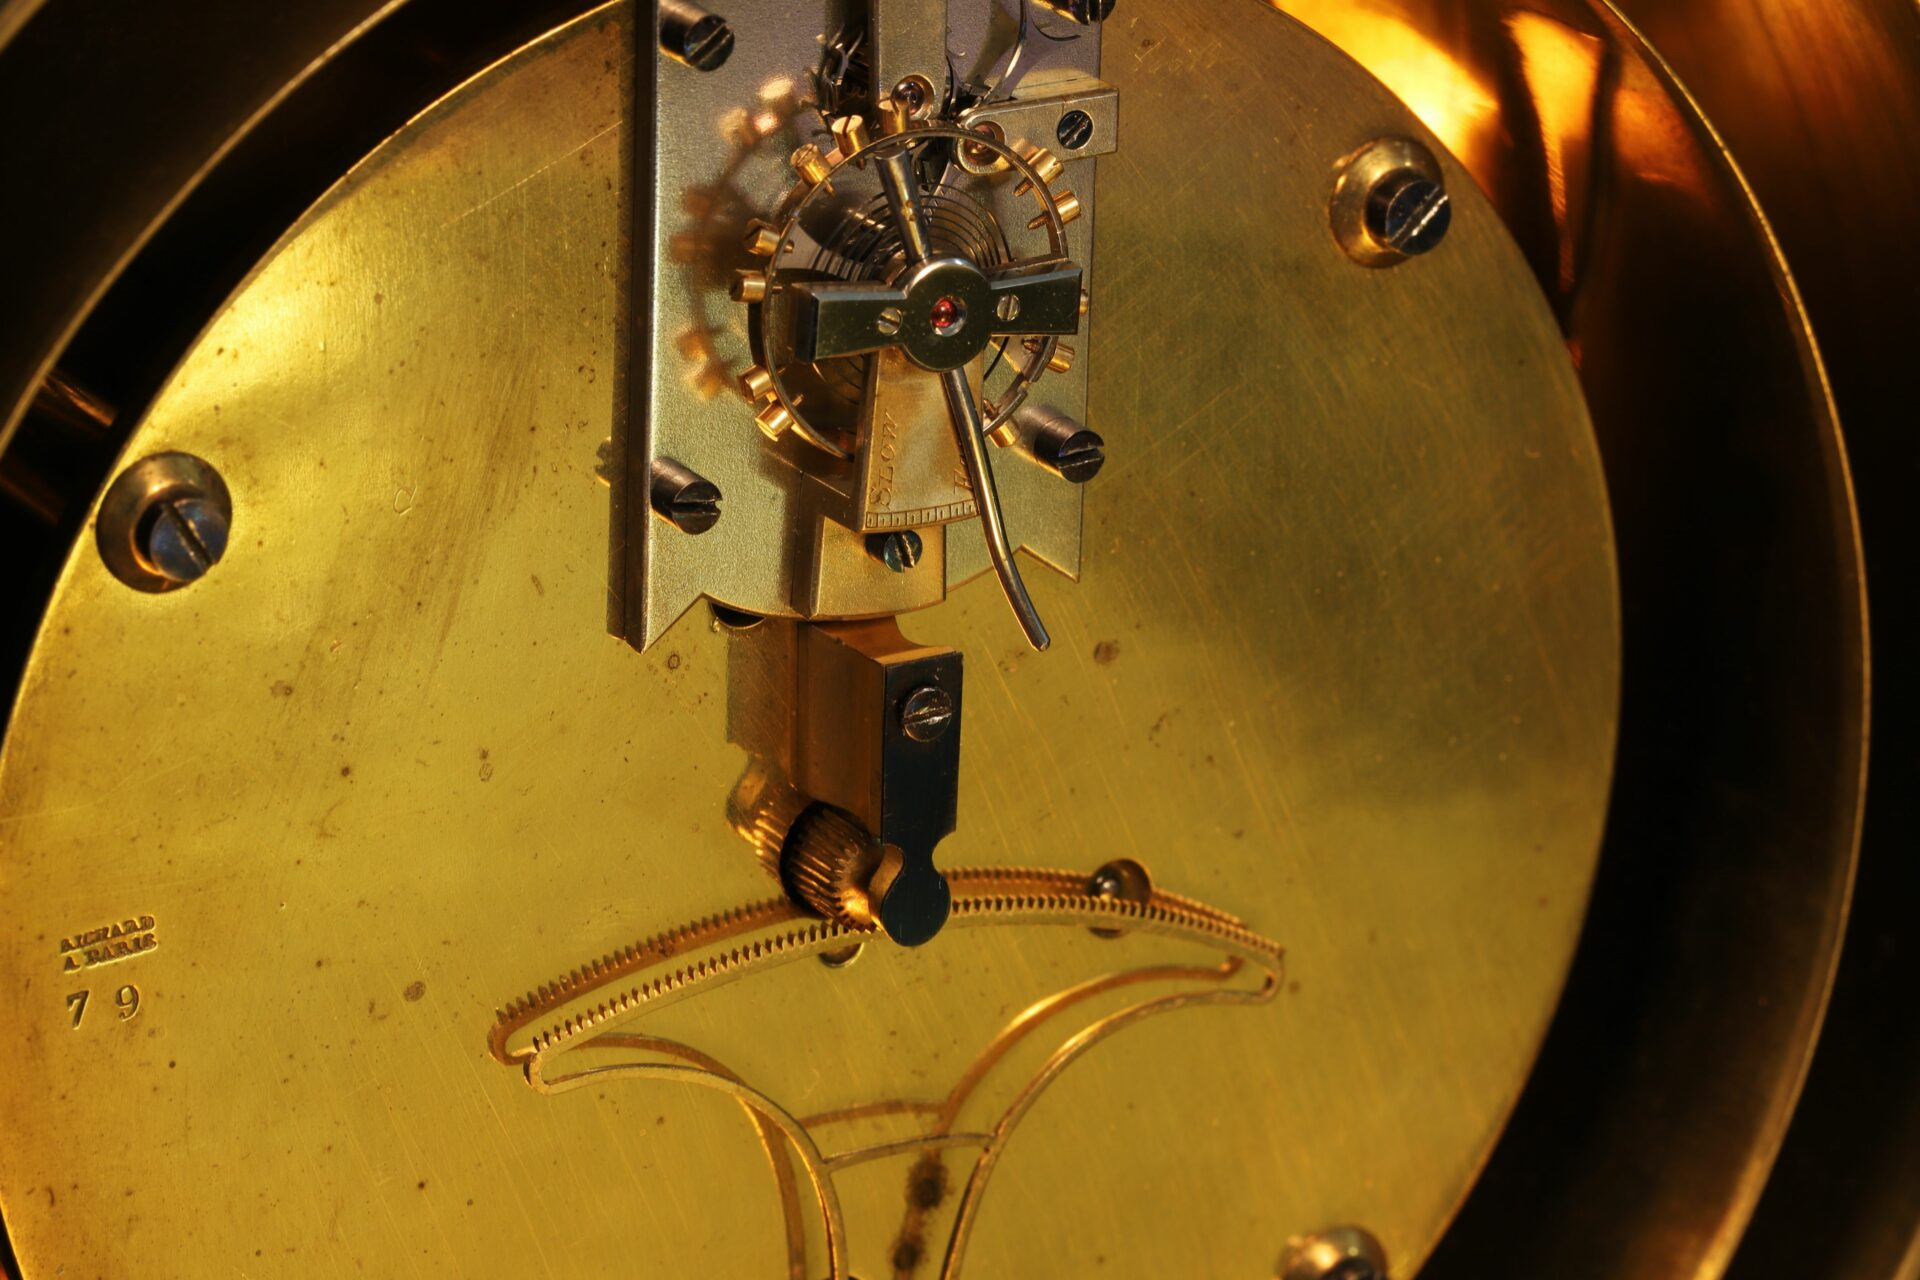 Close up of rear of Bourdon & Richard Barometer Clock No 79 c1880 showing serial number of the Richard clock